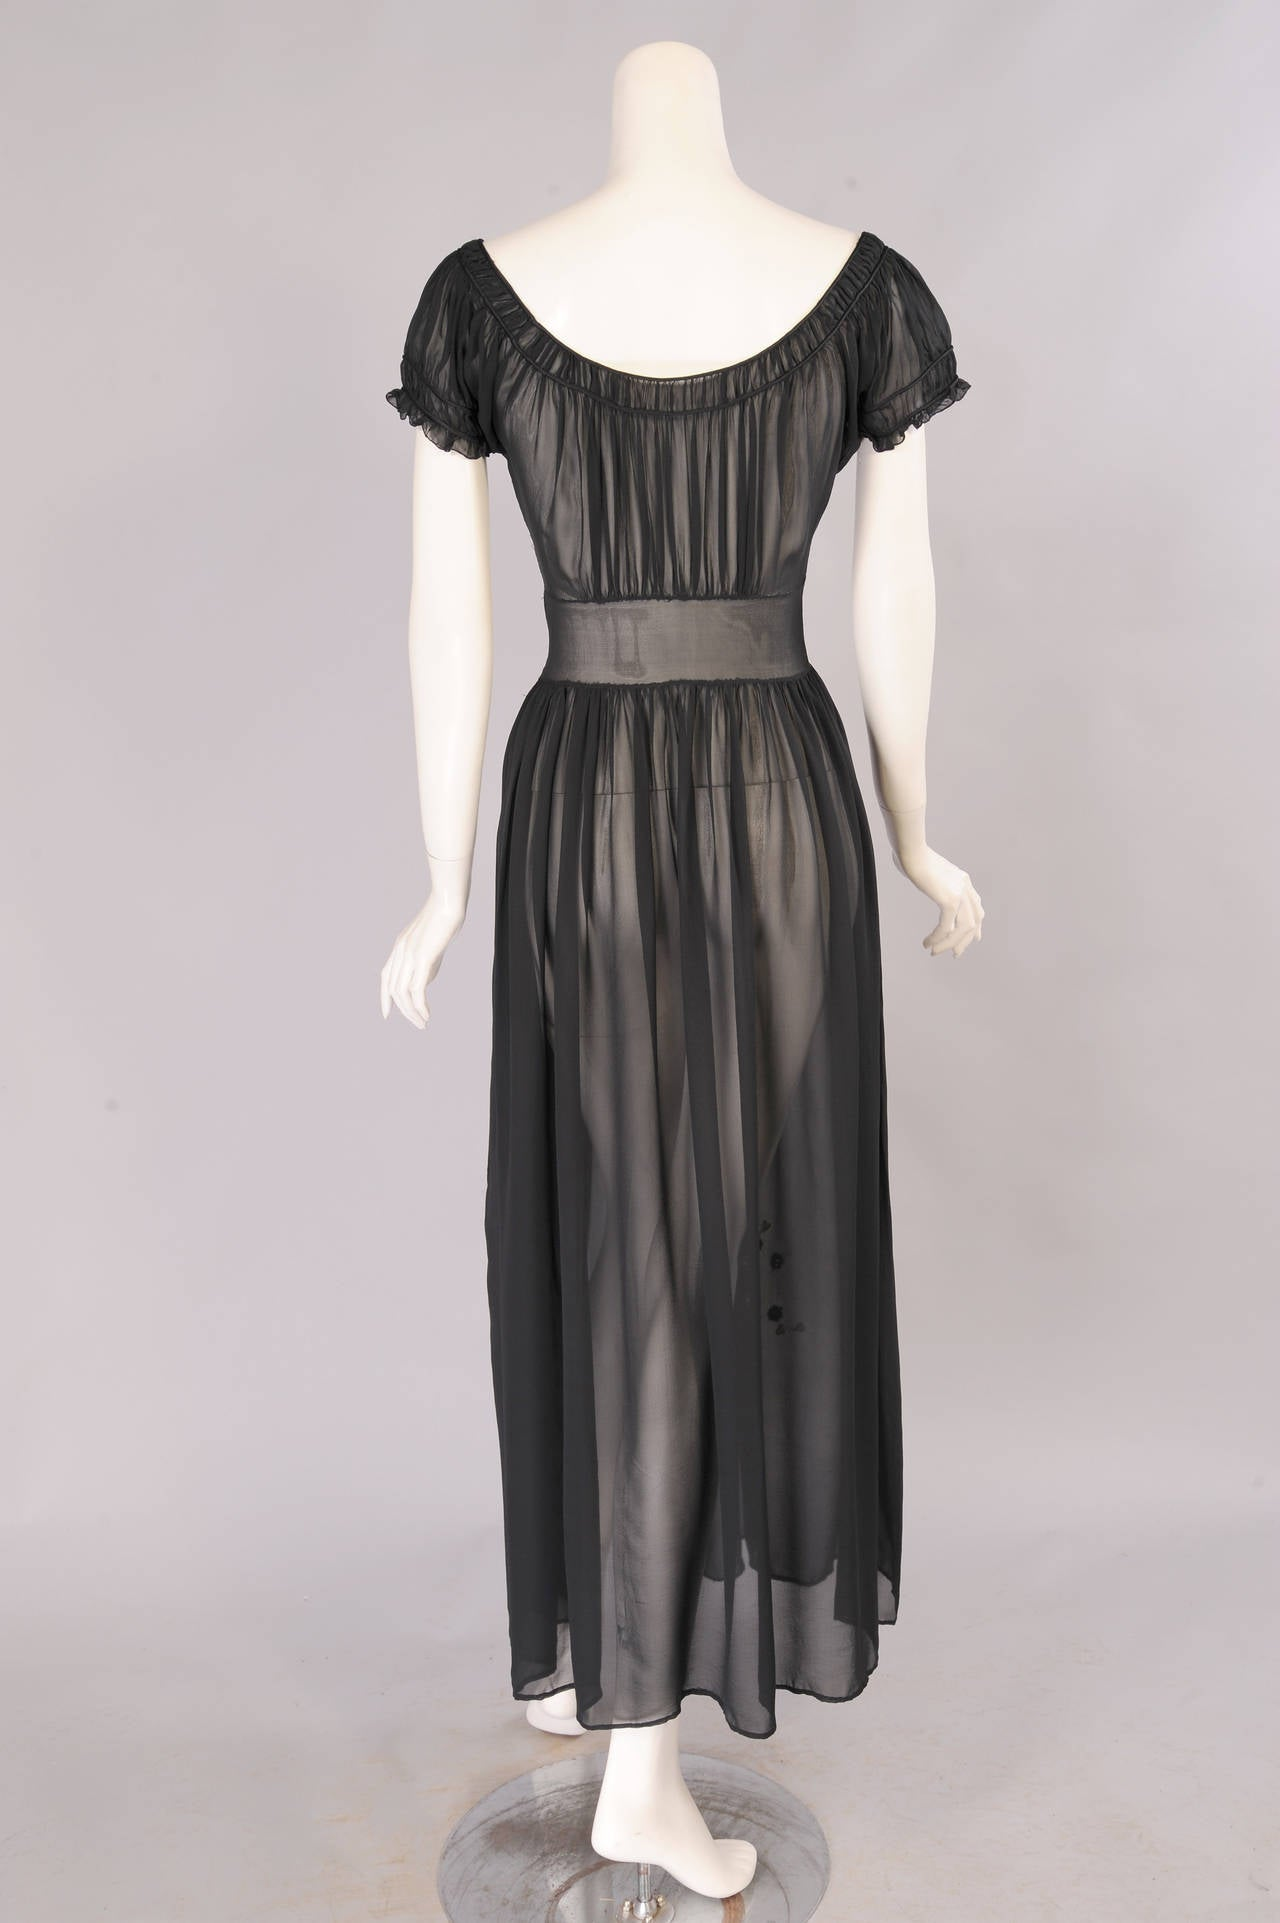 1930's Sheer Silk Chiffon Dress with Floral Appliques In Excellent Condition For Sale In New Hope, PA